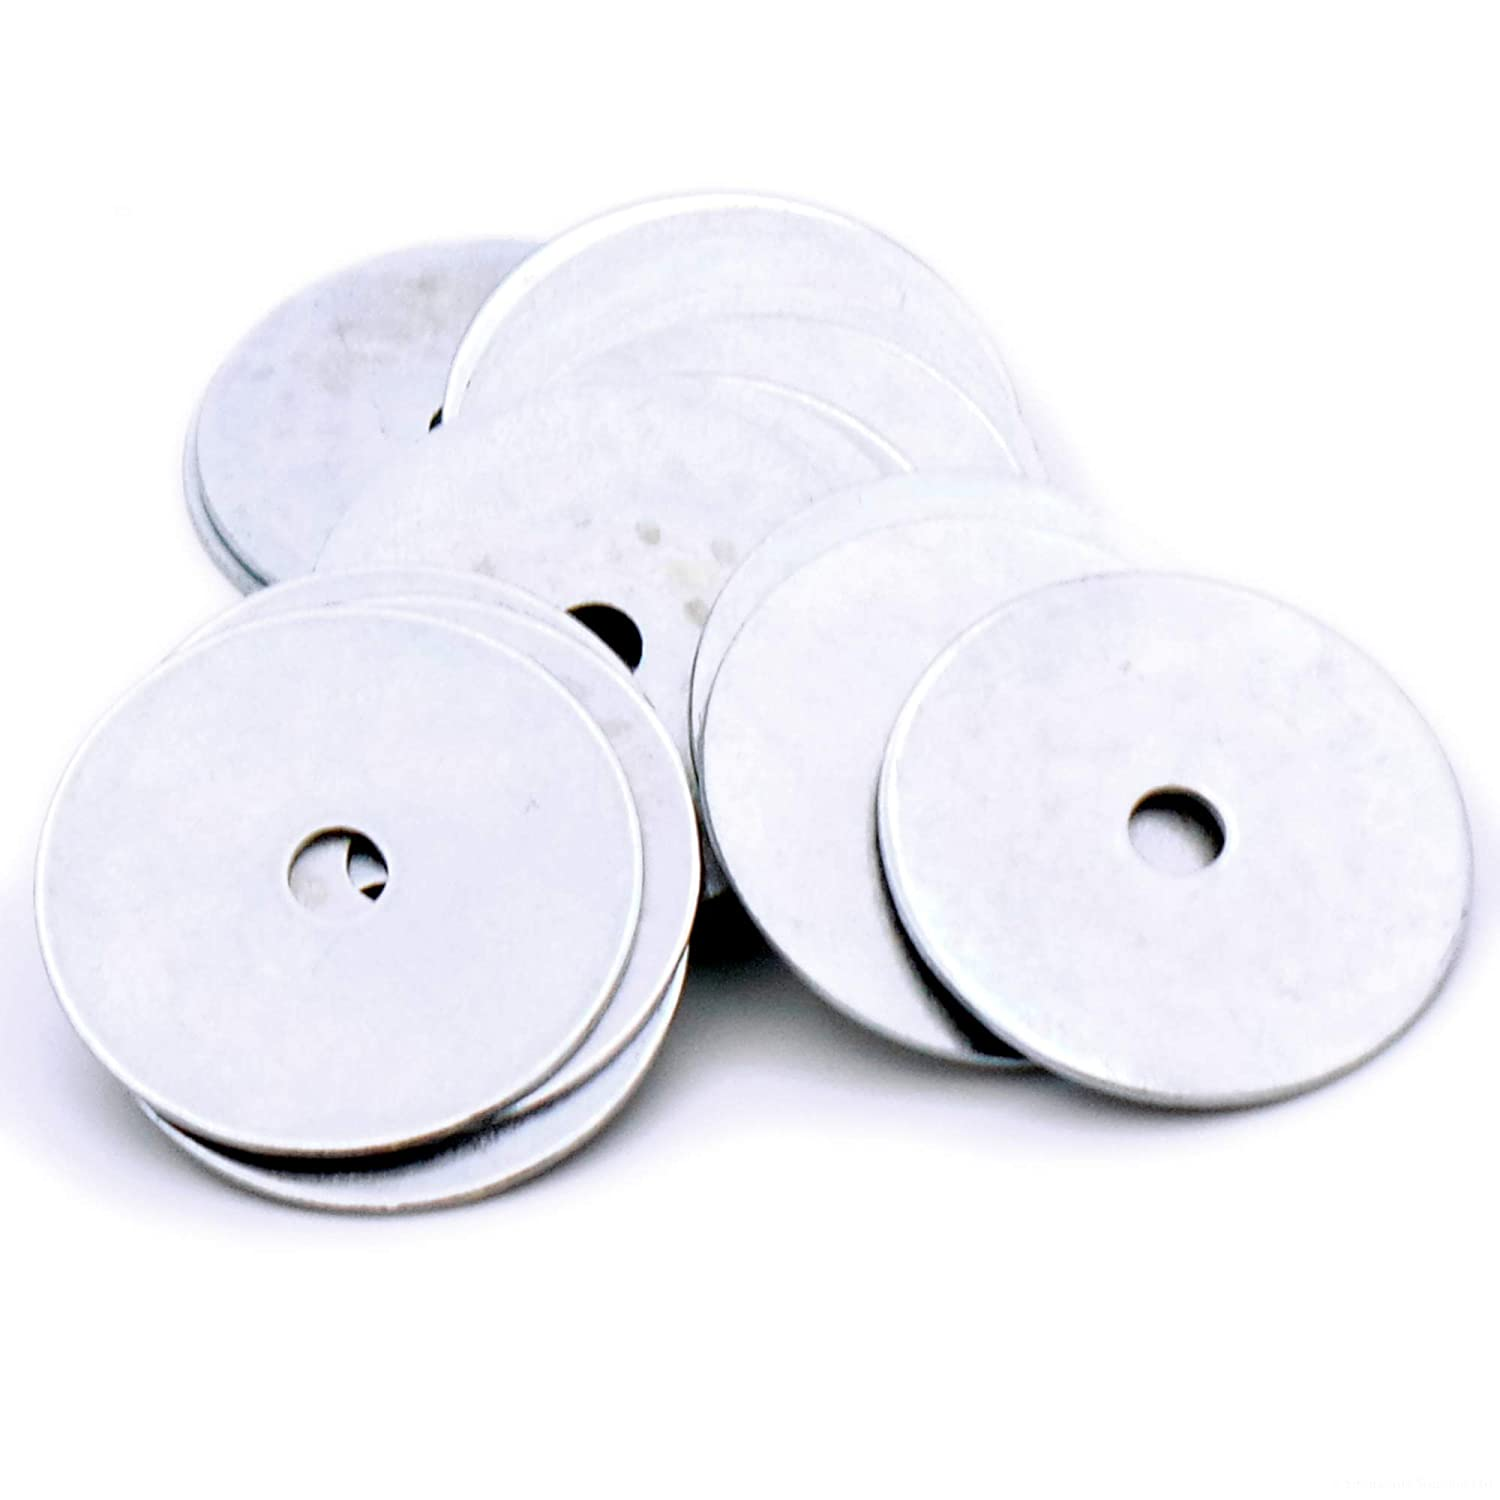 M5 X 30MM STAINLESS STEEL REPAIR WASHER A2 GRADE 304 PENNY MUDGUARD WASHERS